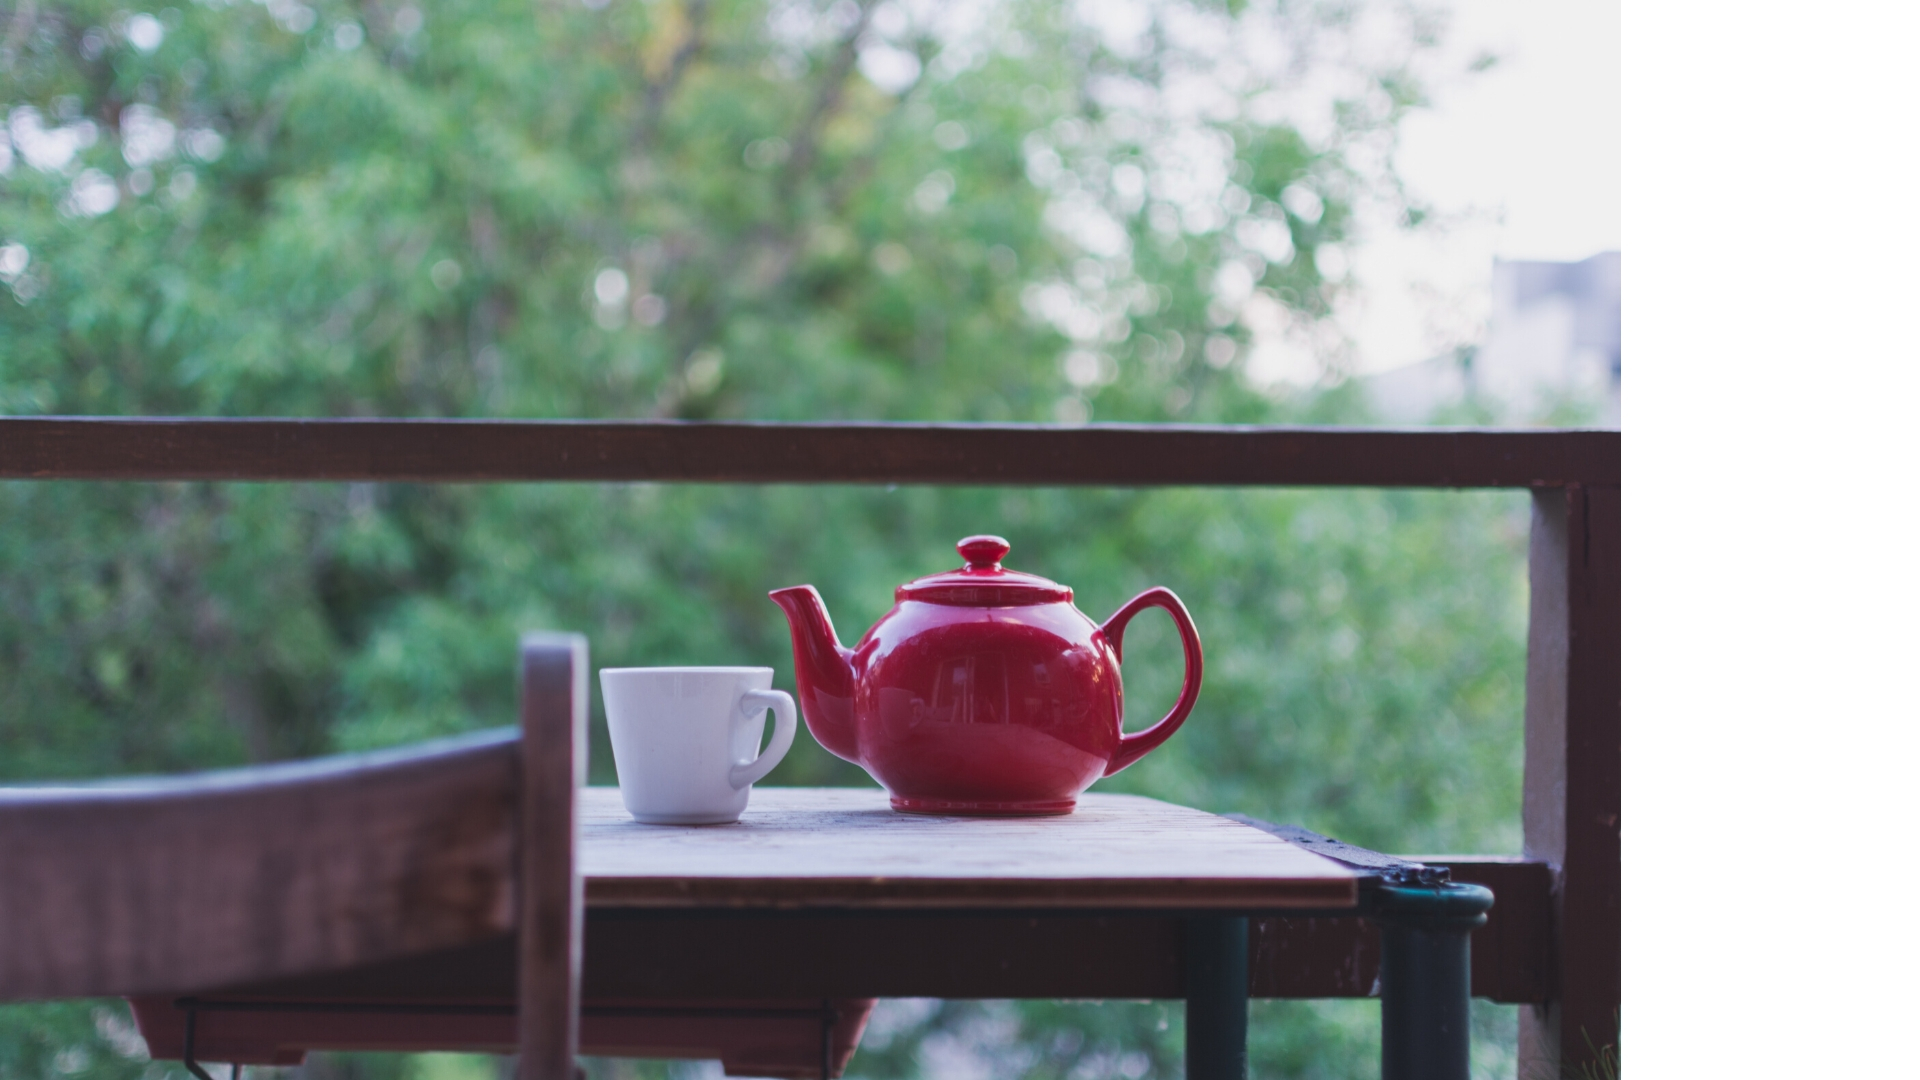 A red teapot and a white cup are on a wooden balcony table. Wooden chair's back is visible. Over the balcony bar there is dark green leaves of a tree.